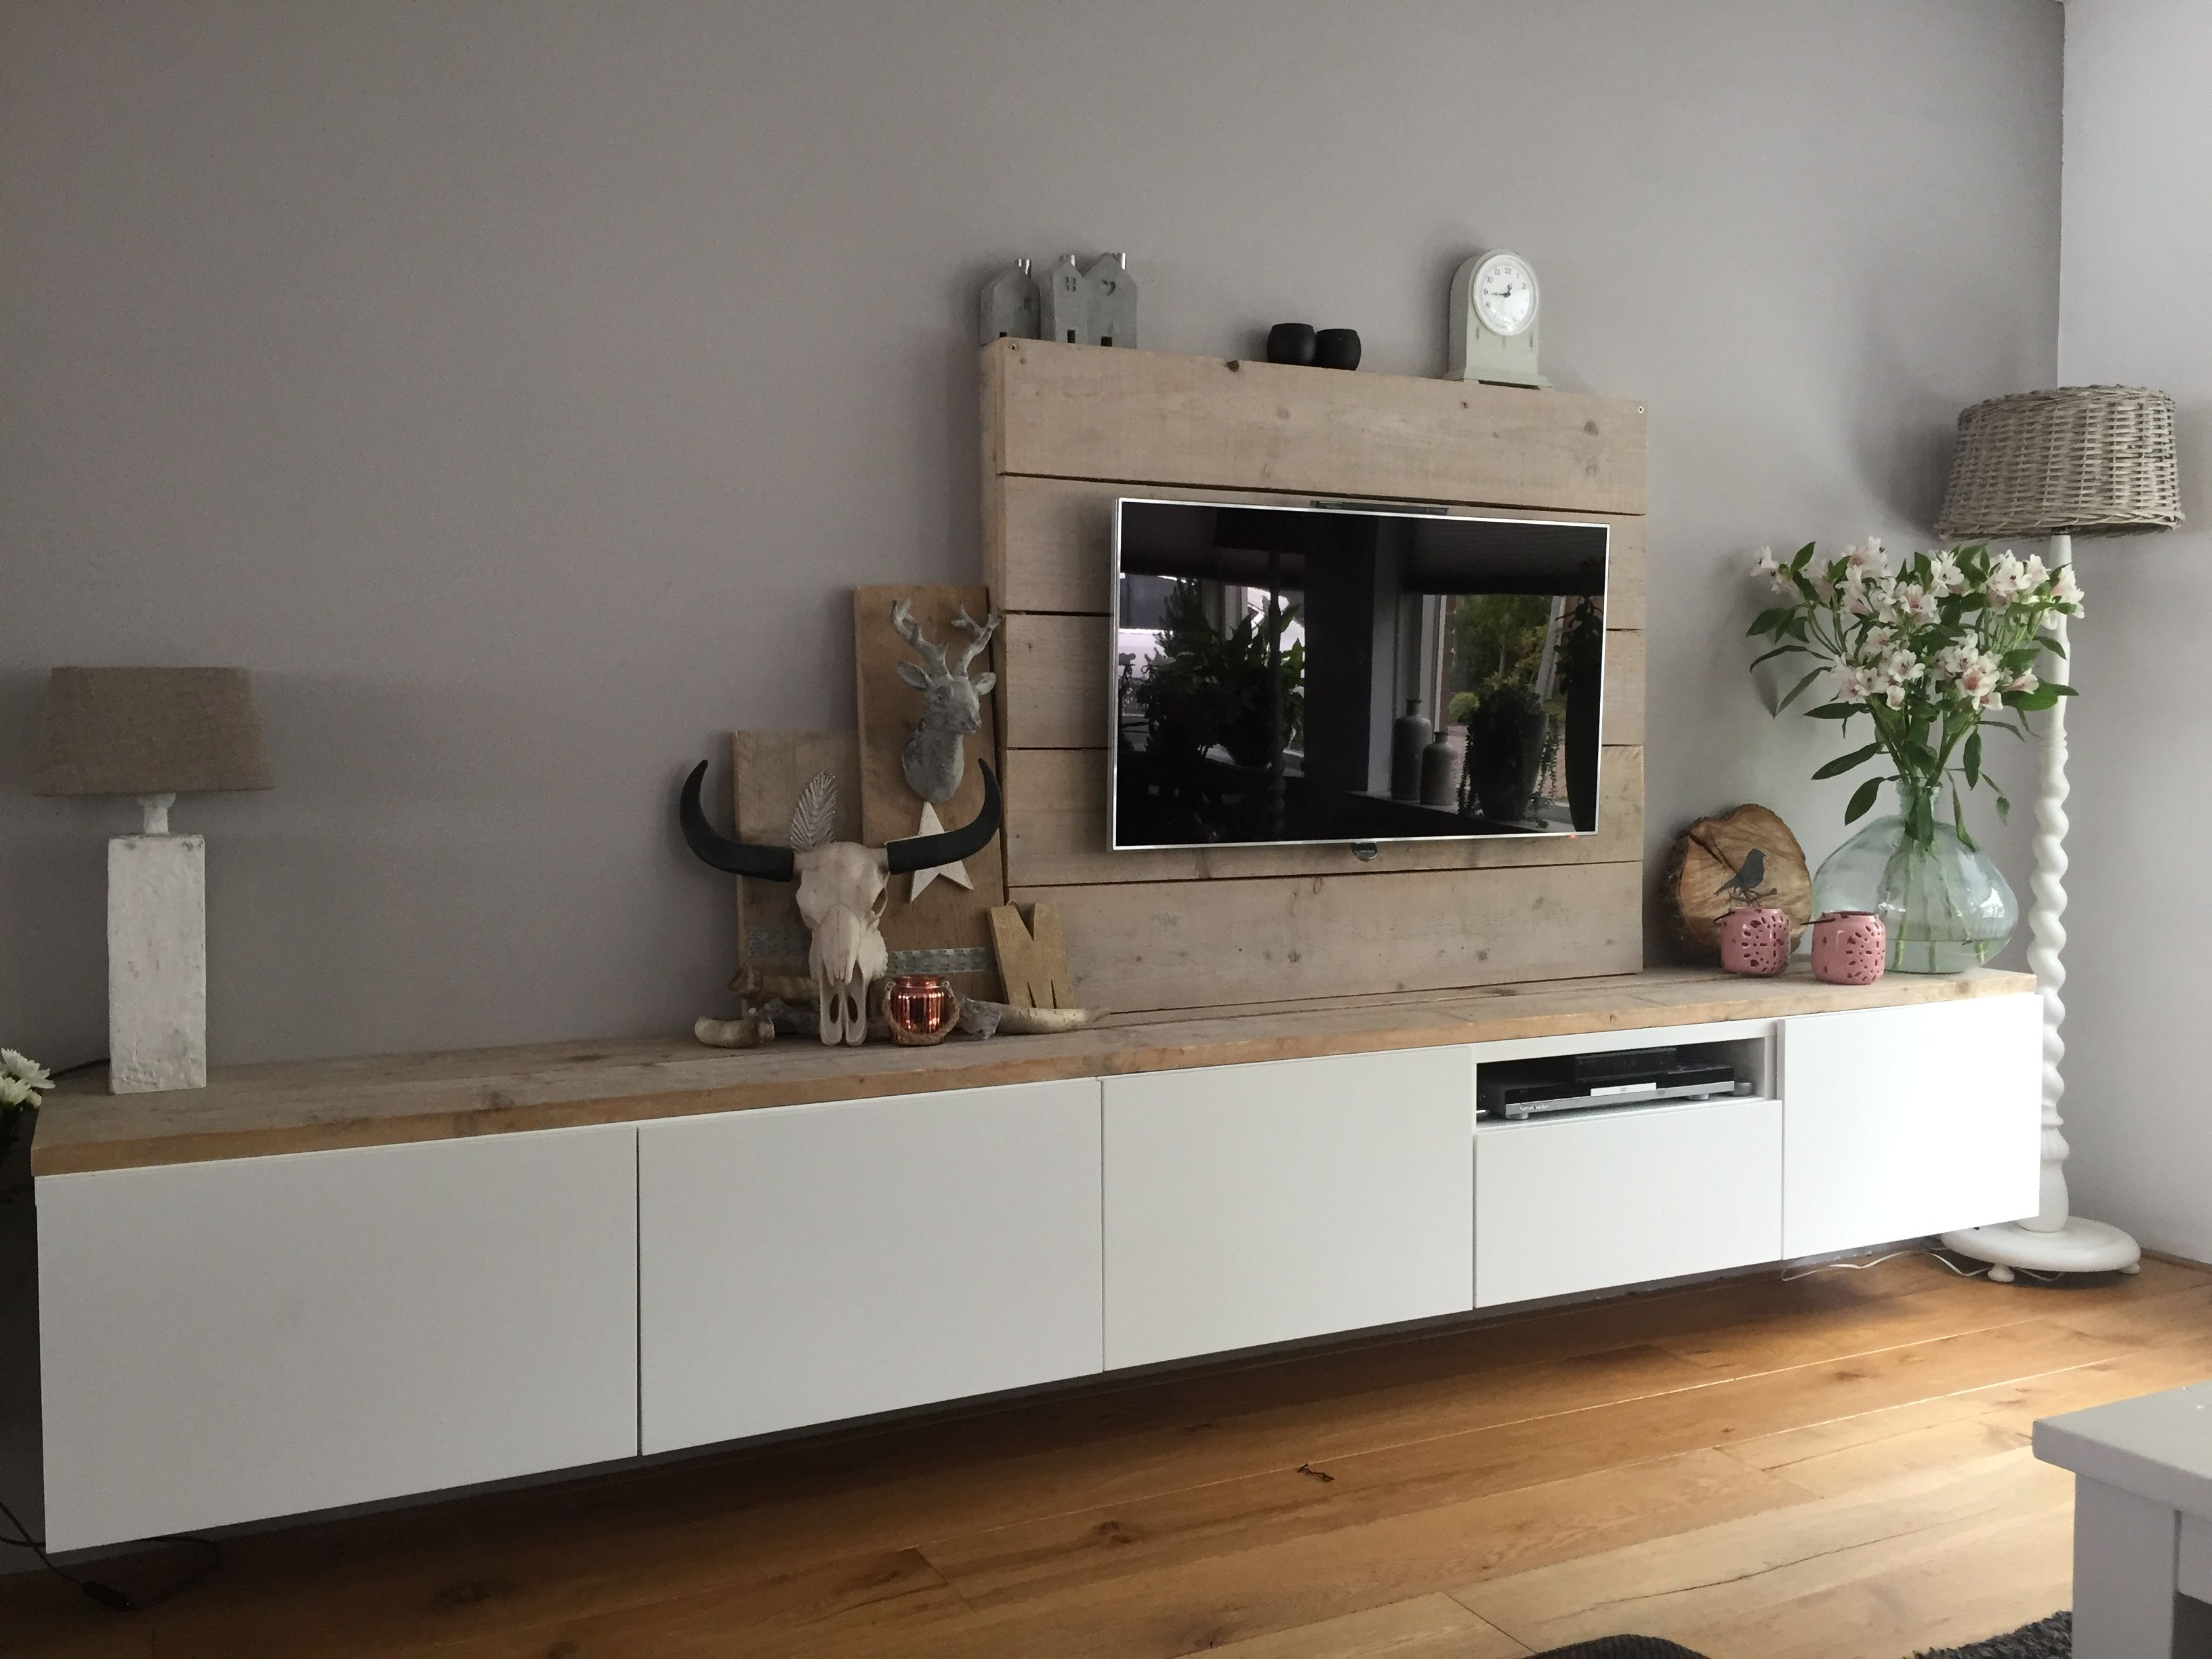 Tv Kasten Ikea Ikea Besta Opgepimpt | Interieur /decoratie - Ikea